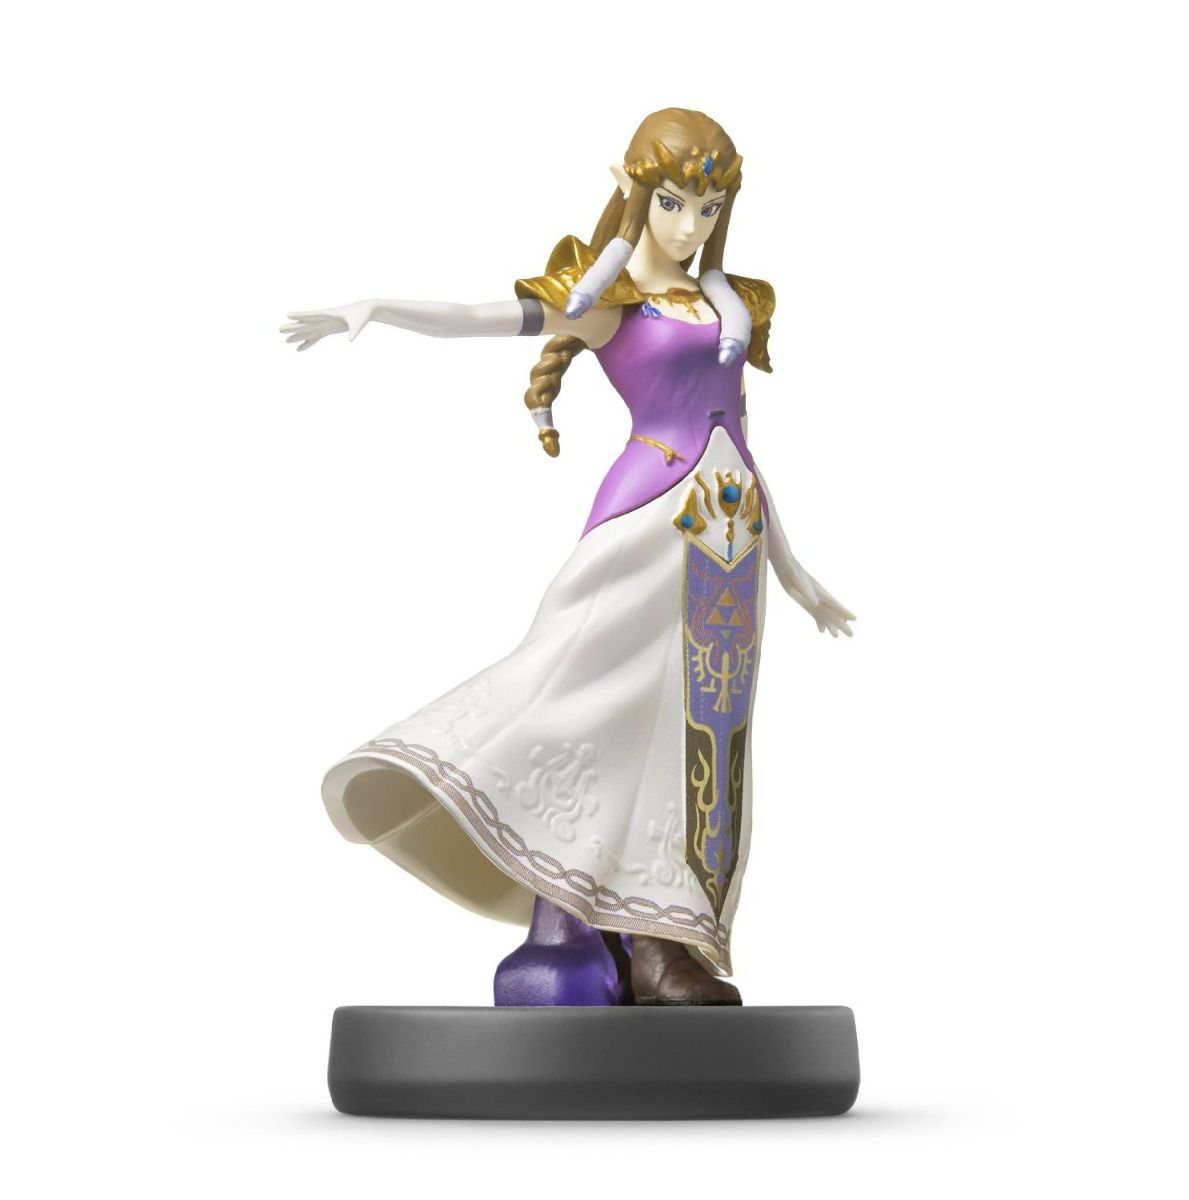 Amiibo Nintendo 3DS Wii U Zelda Super Smash Bros Series